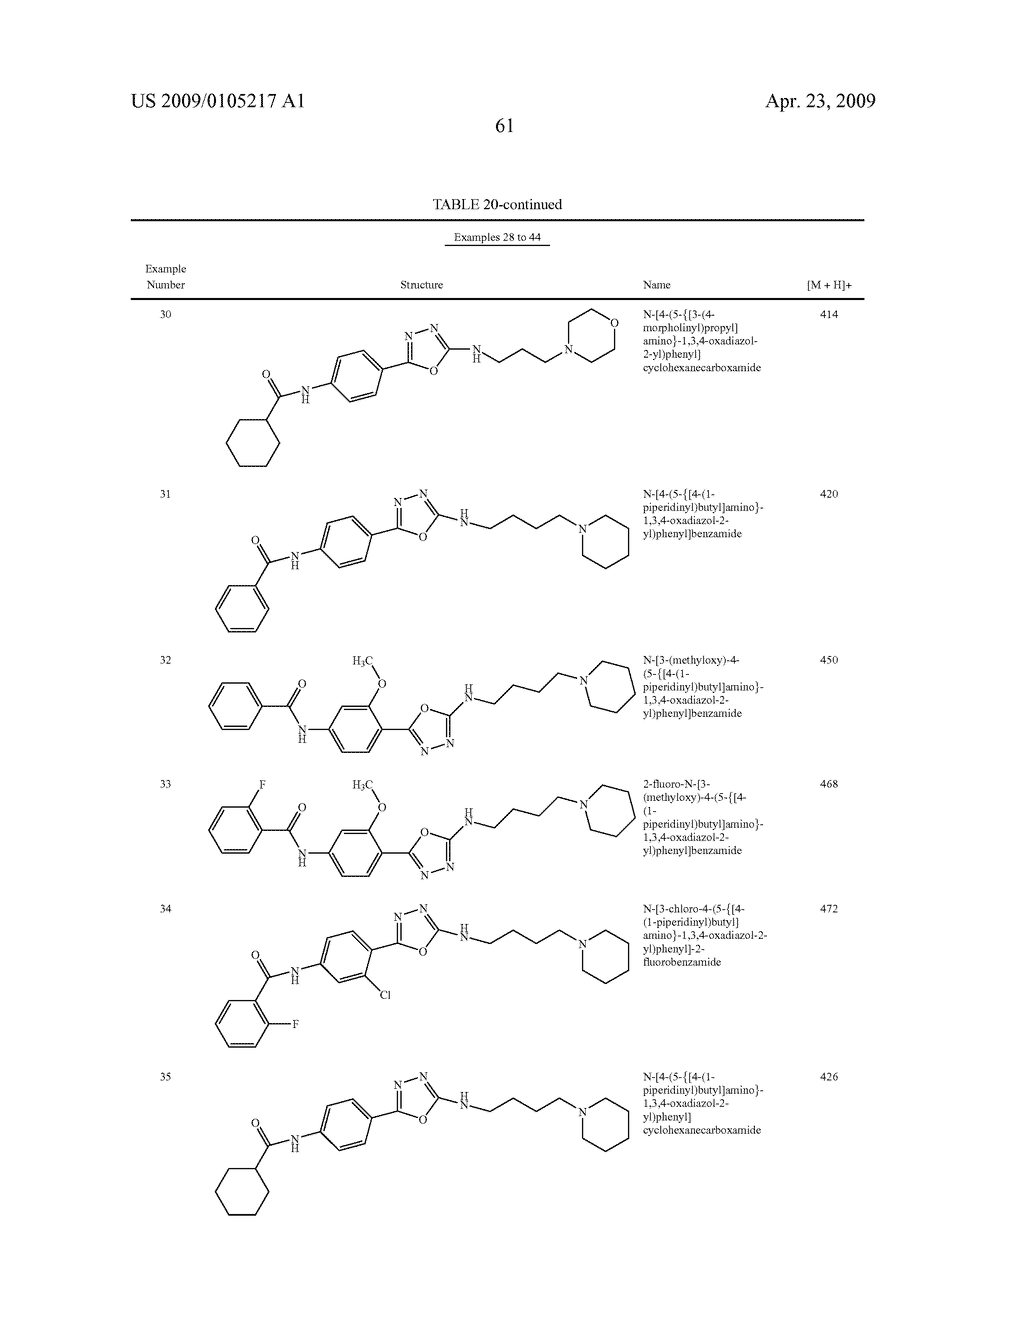 2-PHENYL-5-AMINO-1,3,4-OXADIAZOLES AND THEIR USE AS NICOTINIC ACETYLCHOLINE RECEPTOR LIGANDS - diagram, schematic, and image 62